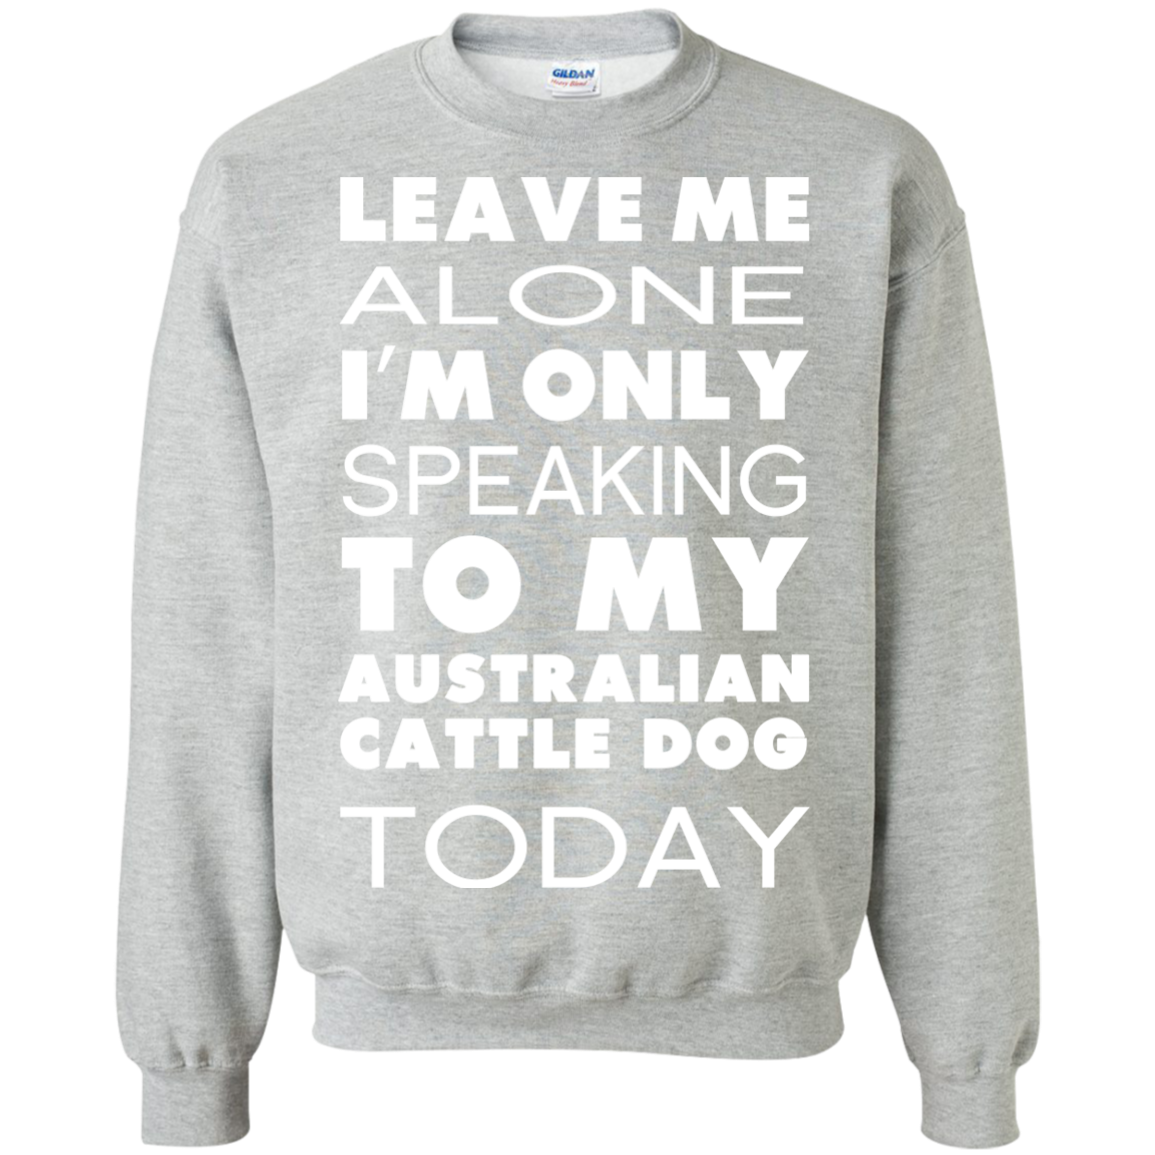 Leave Me Alone Im Only Speaking To My Australian Cattle Dog Today Sweatshirts